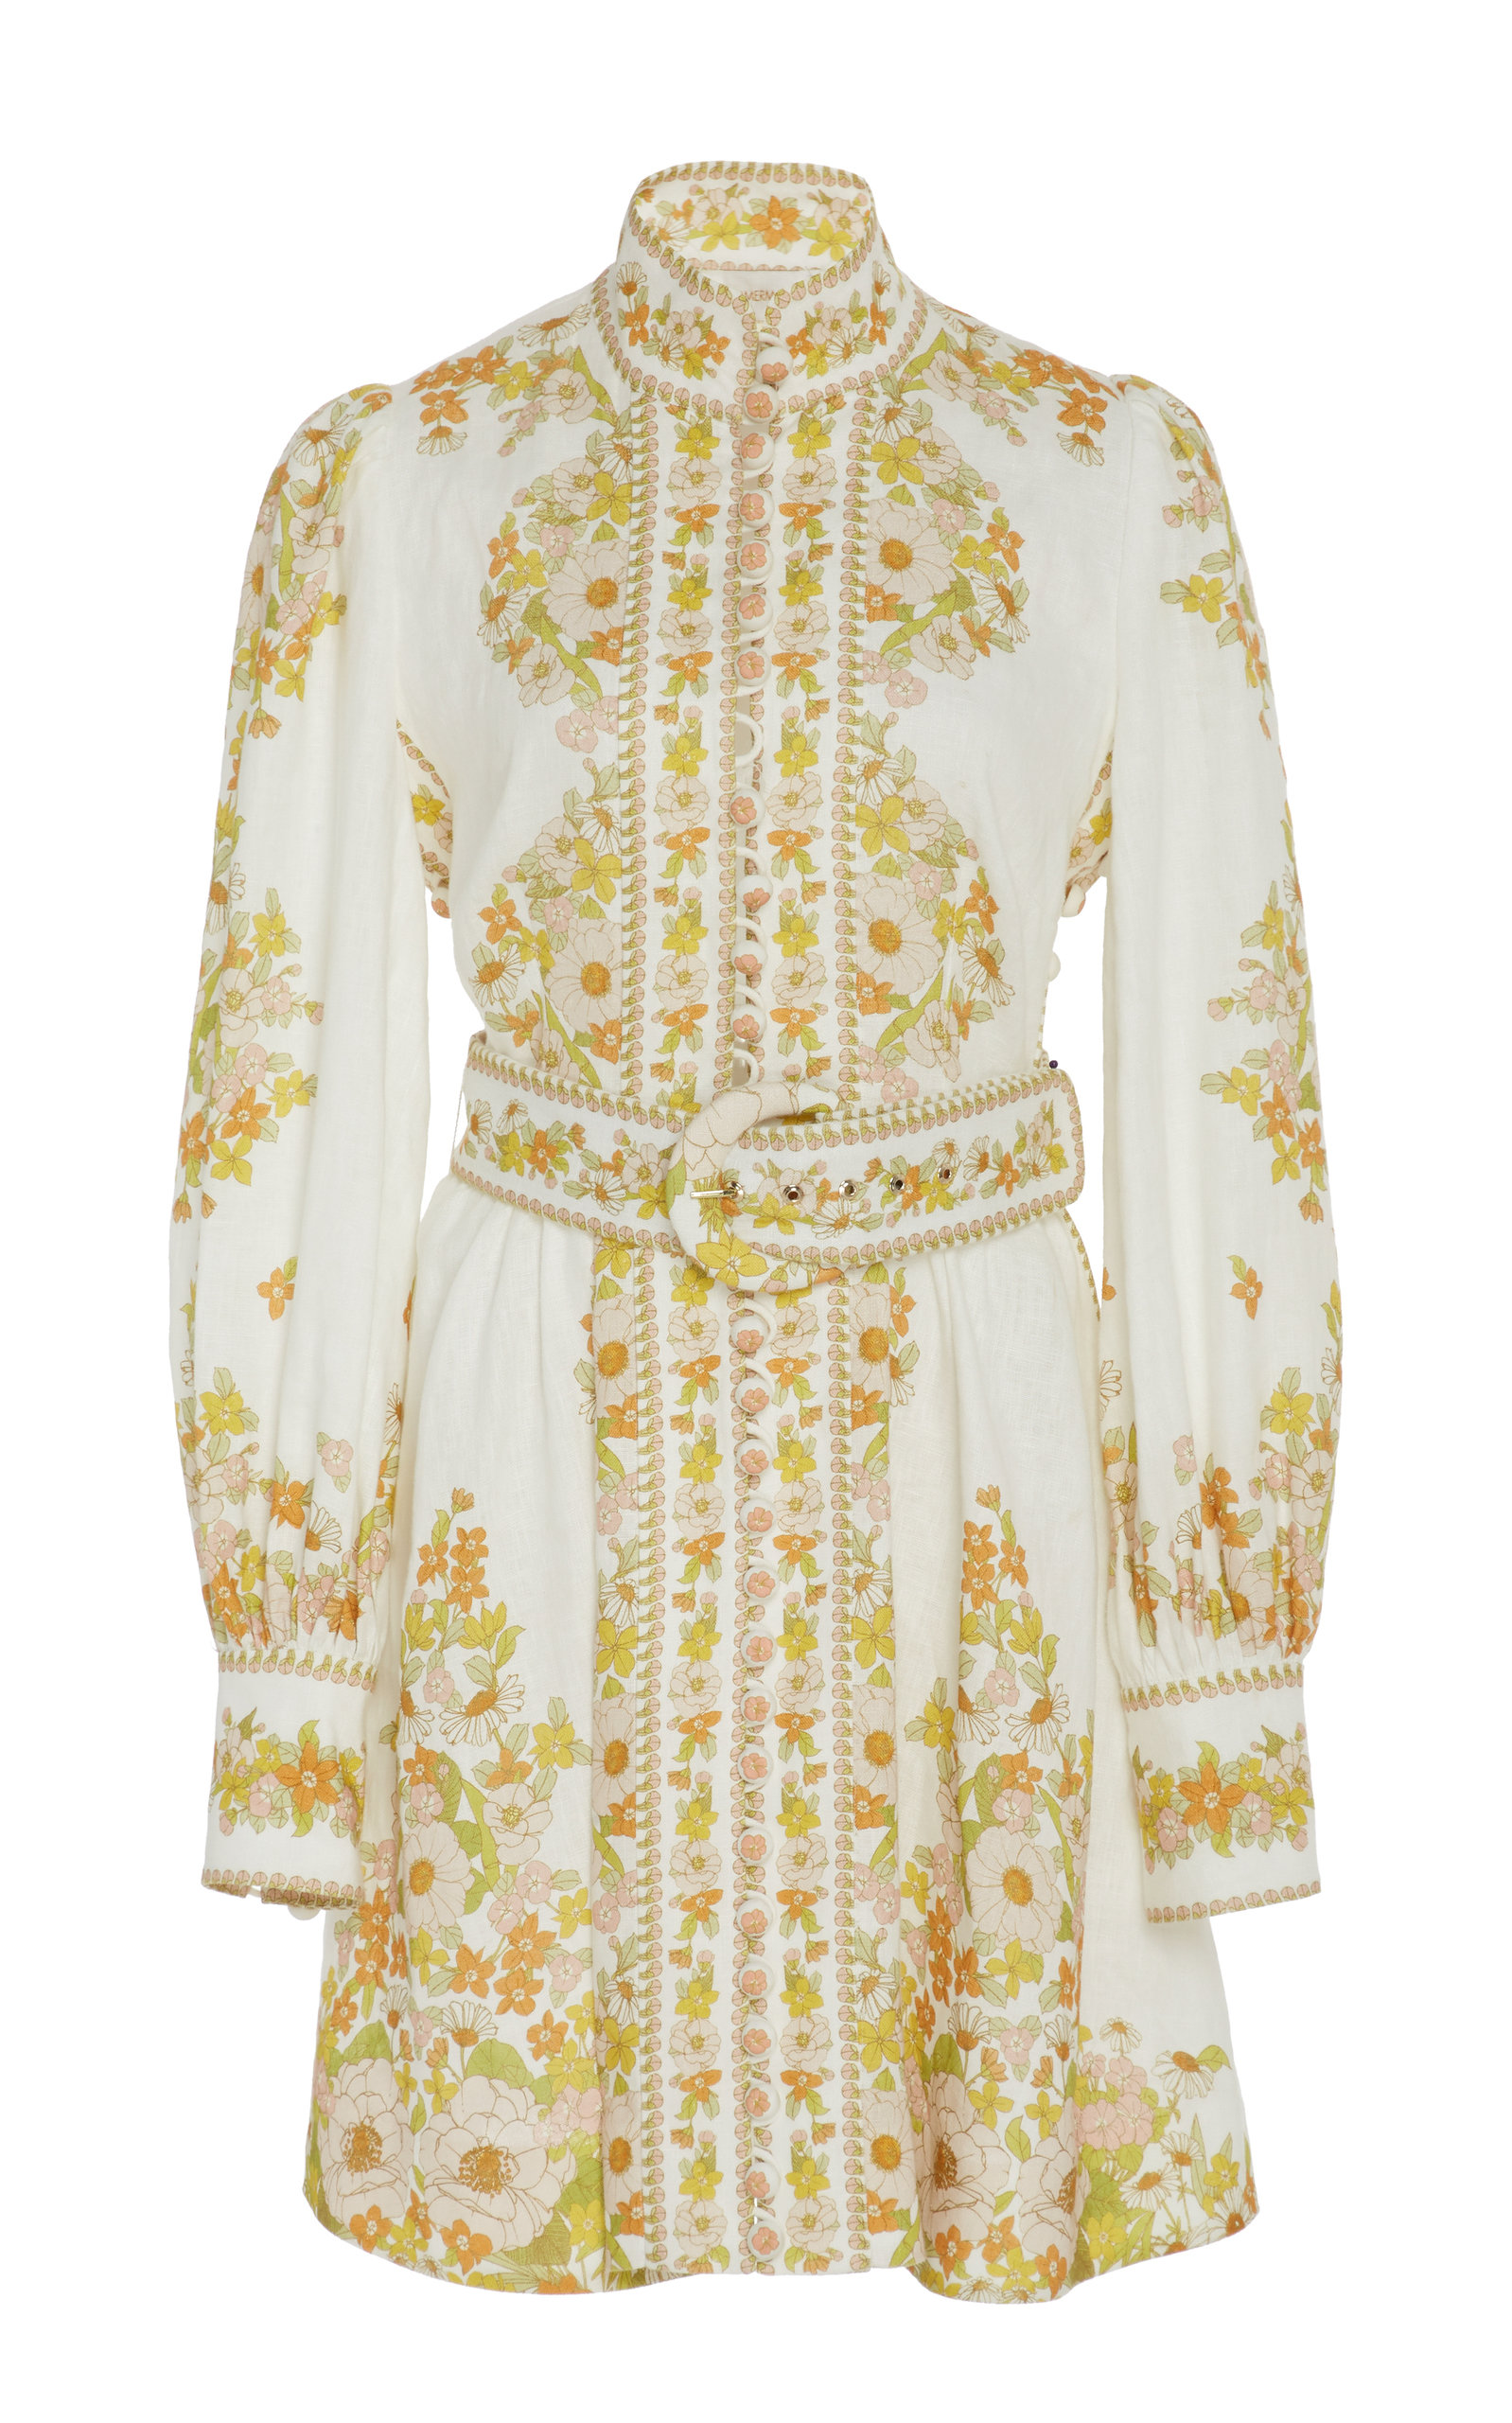 Buy Zimmermann Belted Floral-Print Linen Mini Dress online, shop Zimmermann at the best price